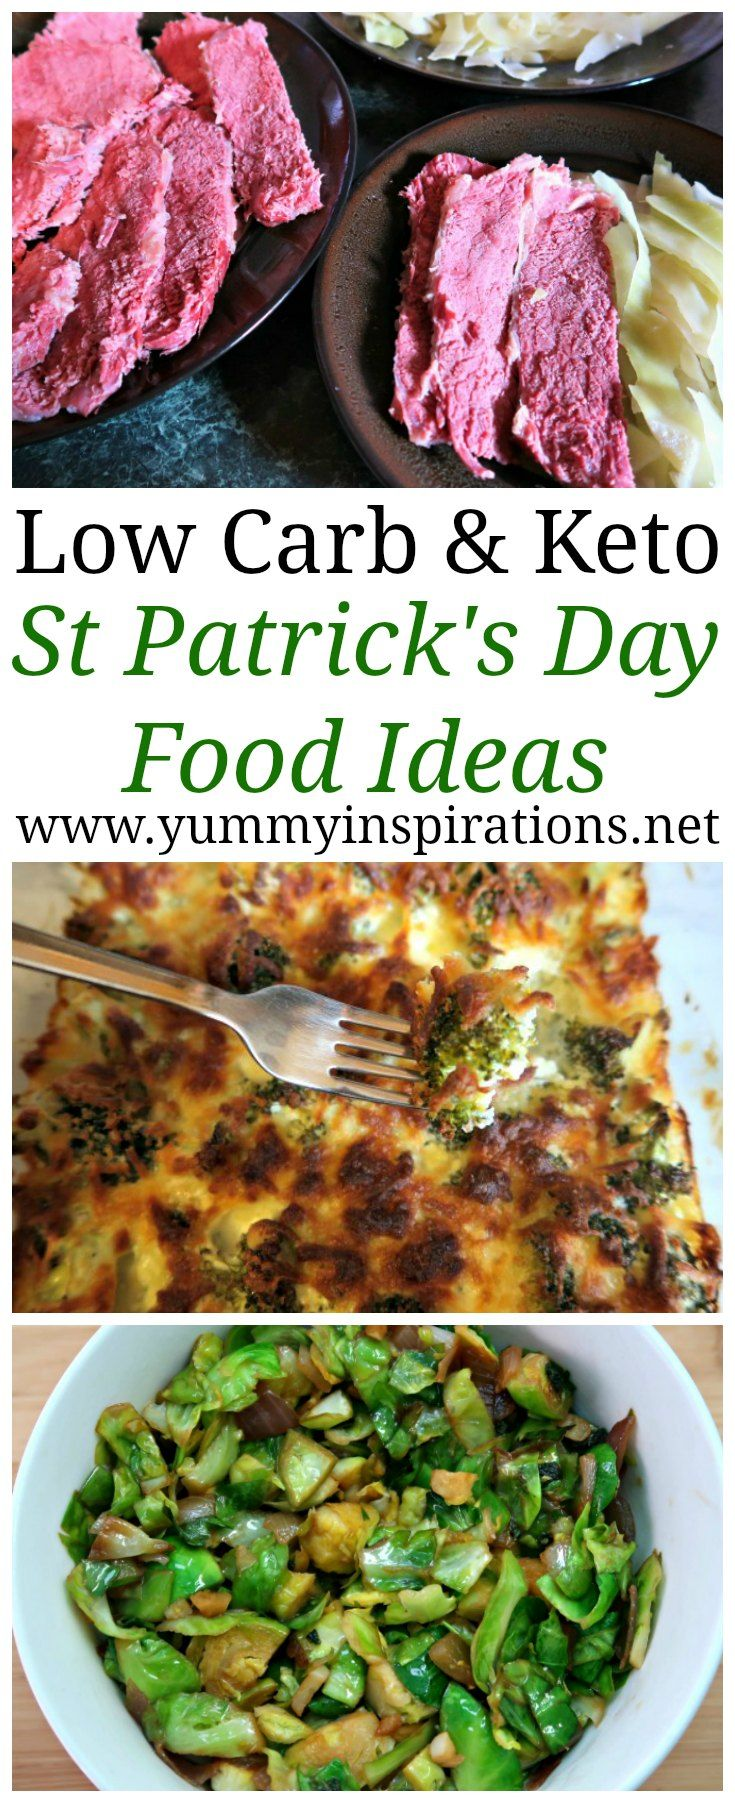 Low Carb St Patrick's Day Food Ideas - including breakfasts, desserts and dinners that are Authentic Irish and Keto Diet friendly. Including traditional Corned Beef, Cabbage and other simple dishes.